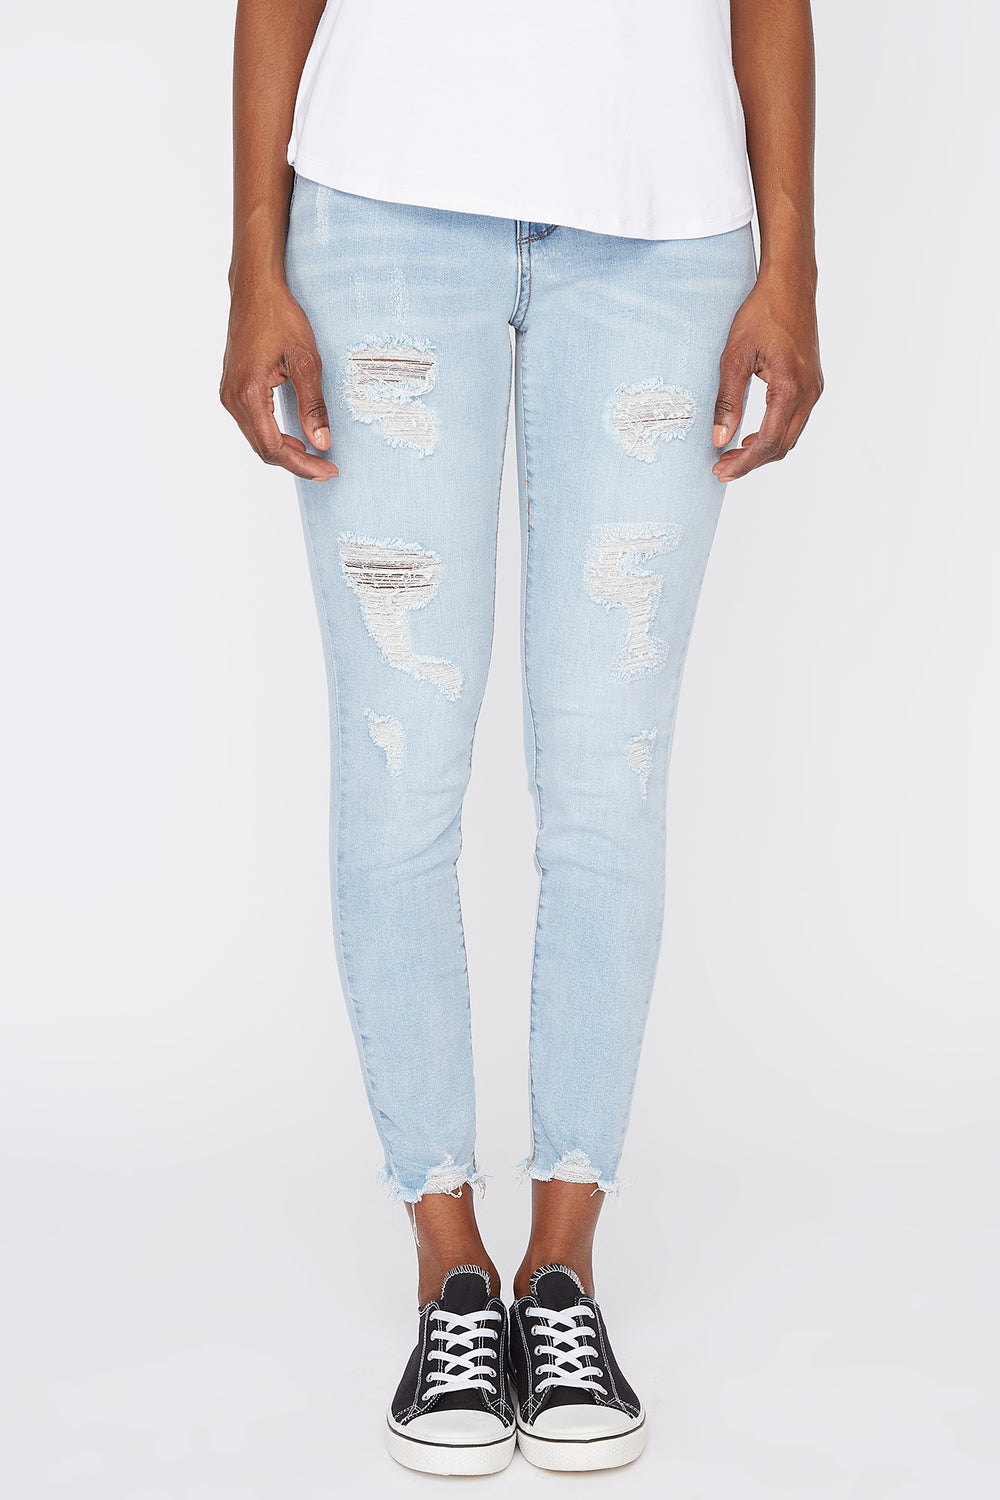 Zoo York Womens Cropped High Rise Jeans Light Denim Blue